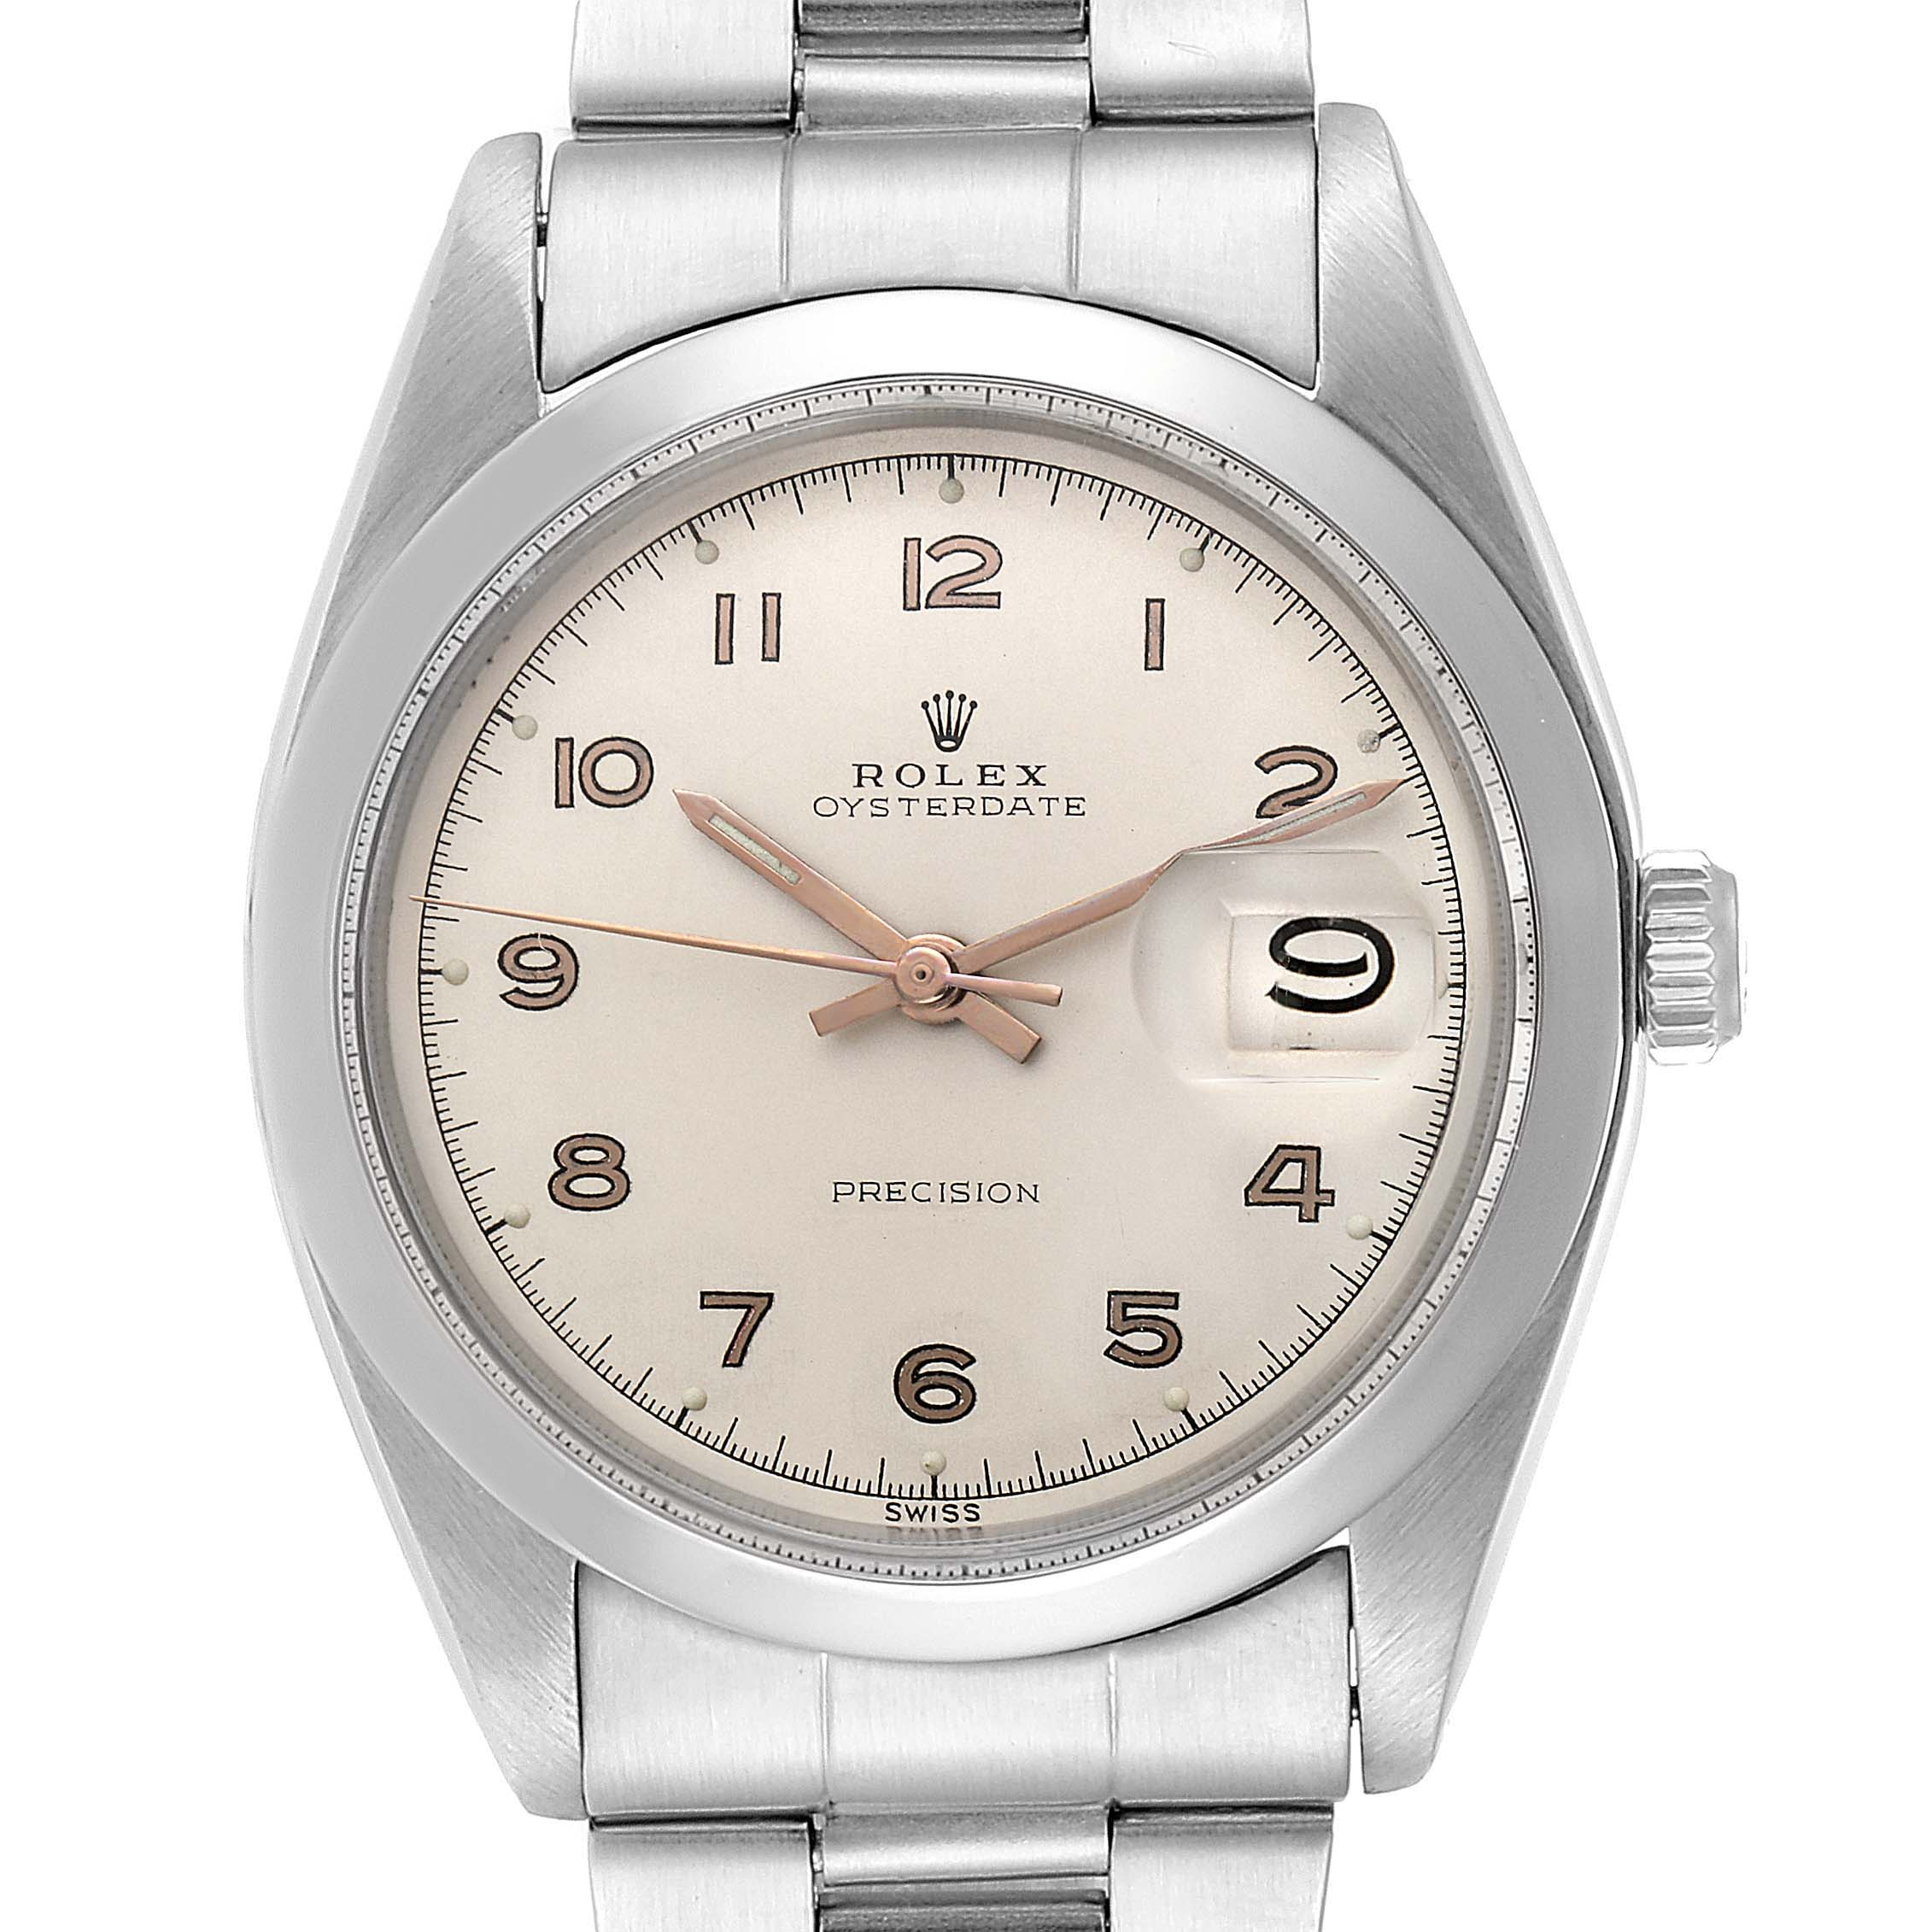 Rolex OysterDate Precision Silver Dial Steel Vintage Mens Watch 6694 SwissWatchExpo